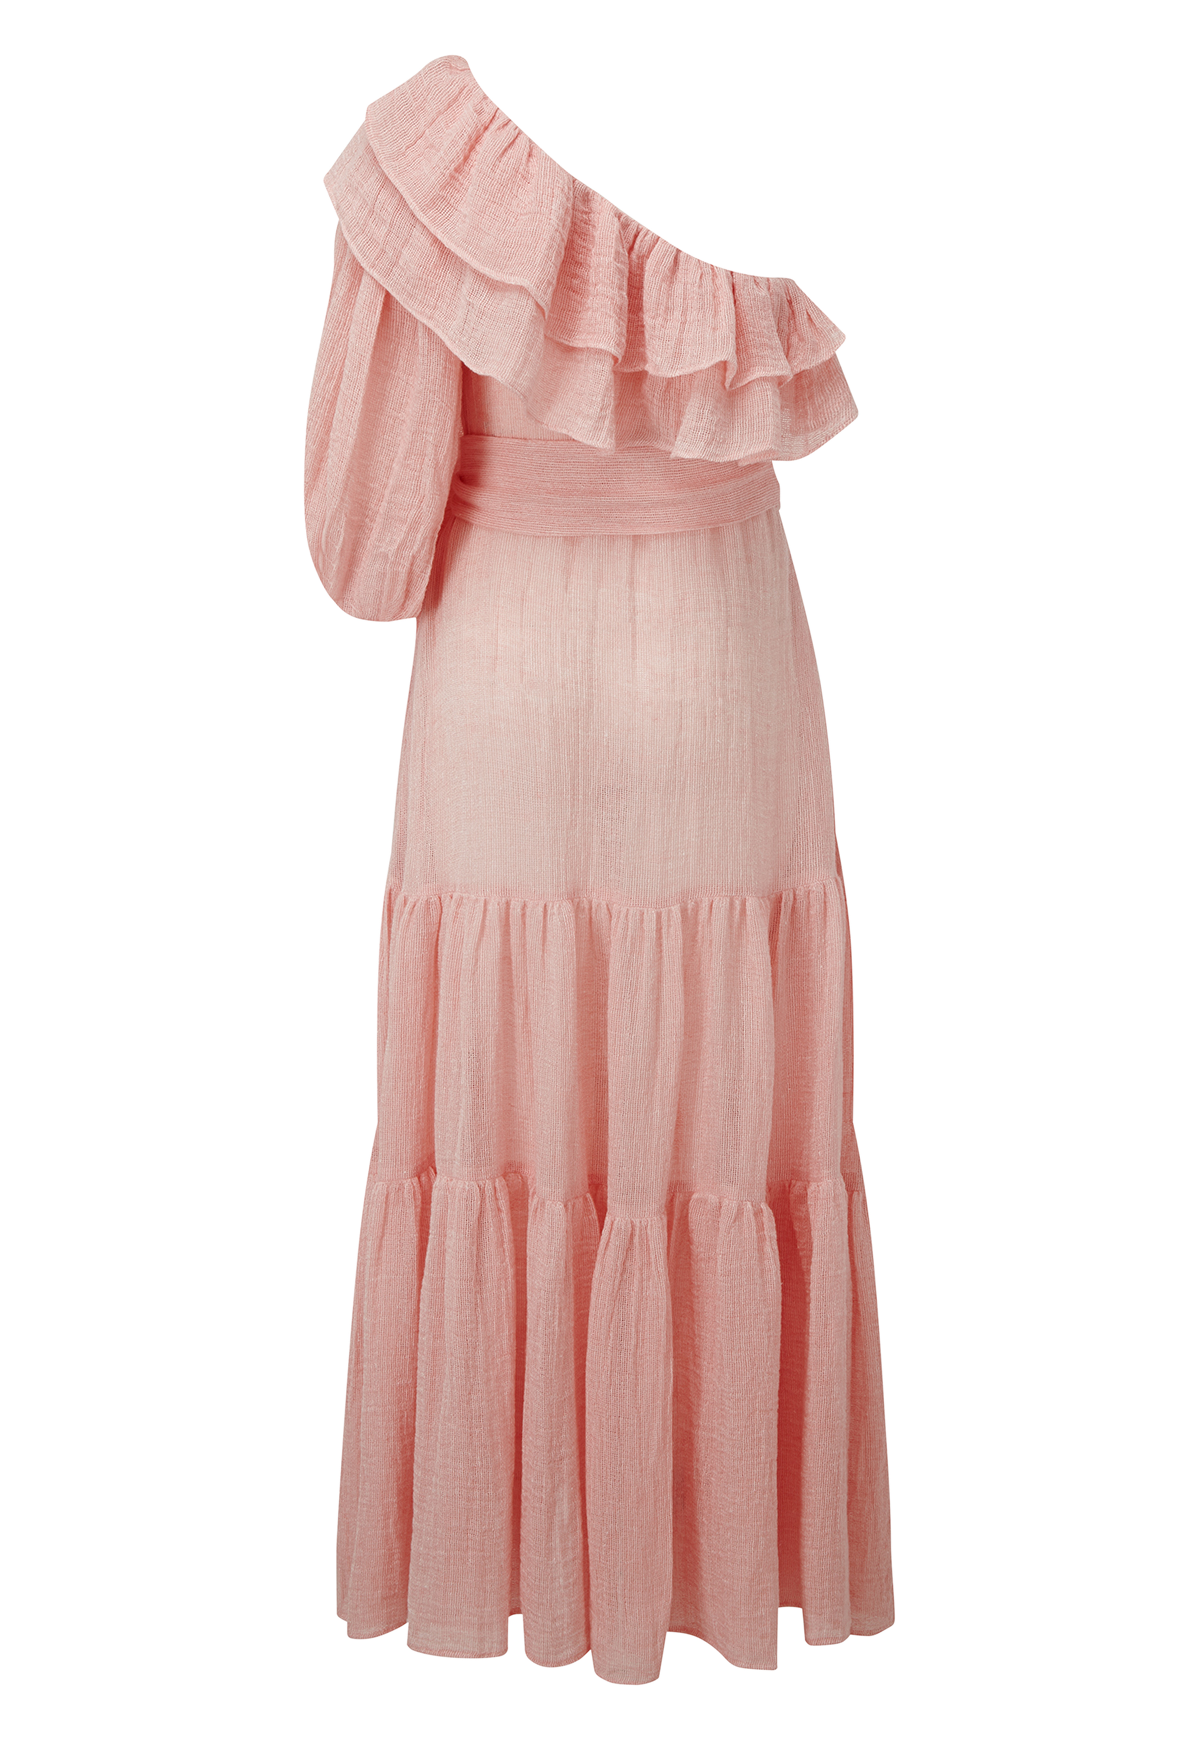 ARDEN PINK CHIOS GAUZE DRESS